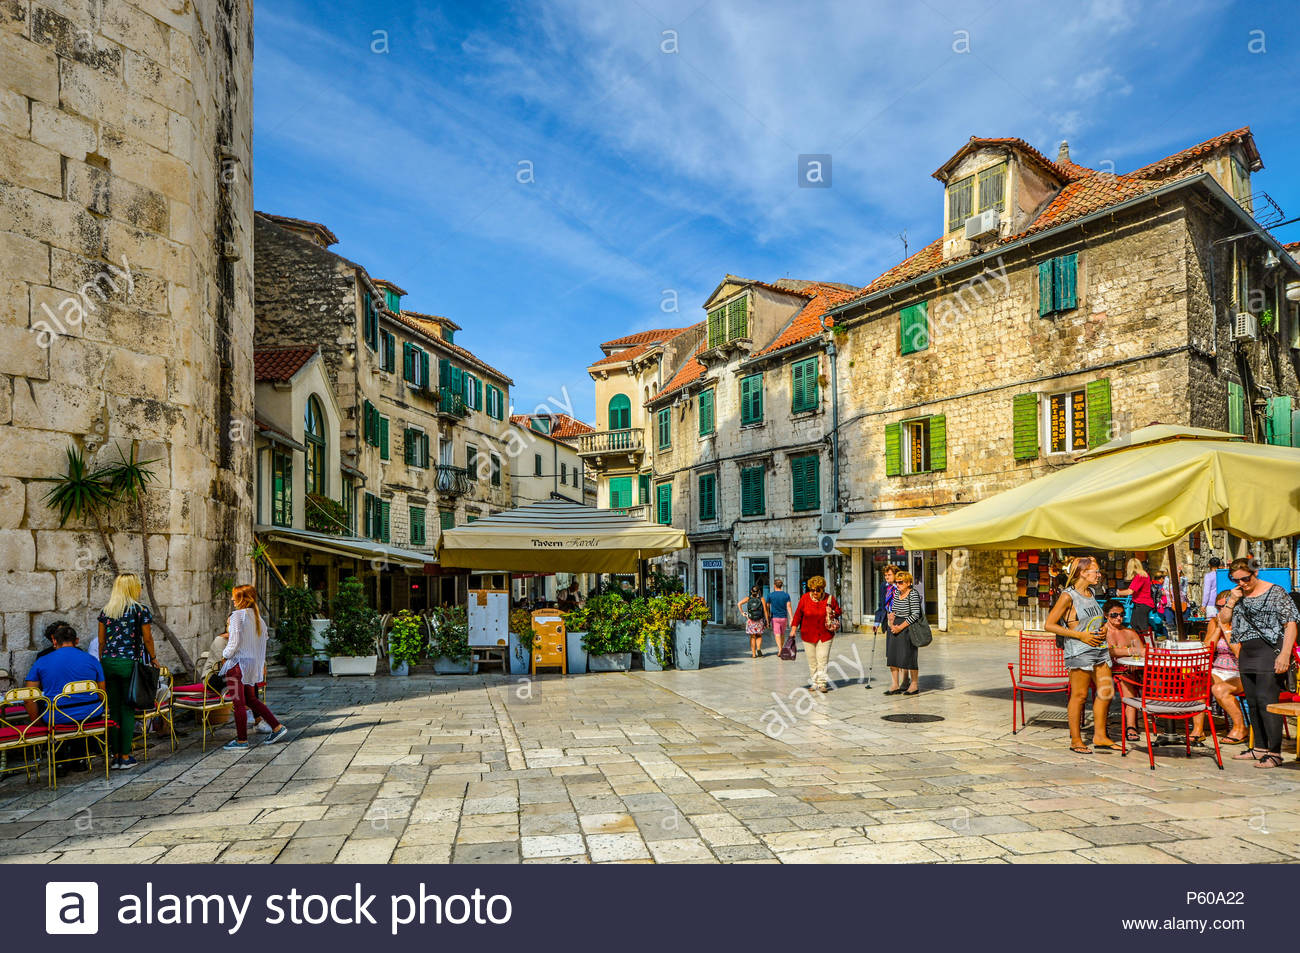 Tourists enjoy cafes and shops on an early autumn afternoon on the Fruit Square in the Diocletian's Palace section of Old Town Split, Croatia. Stock Photo